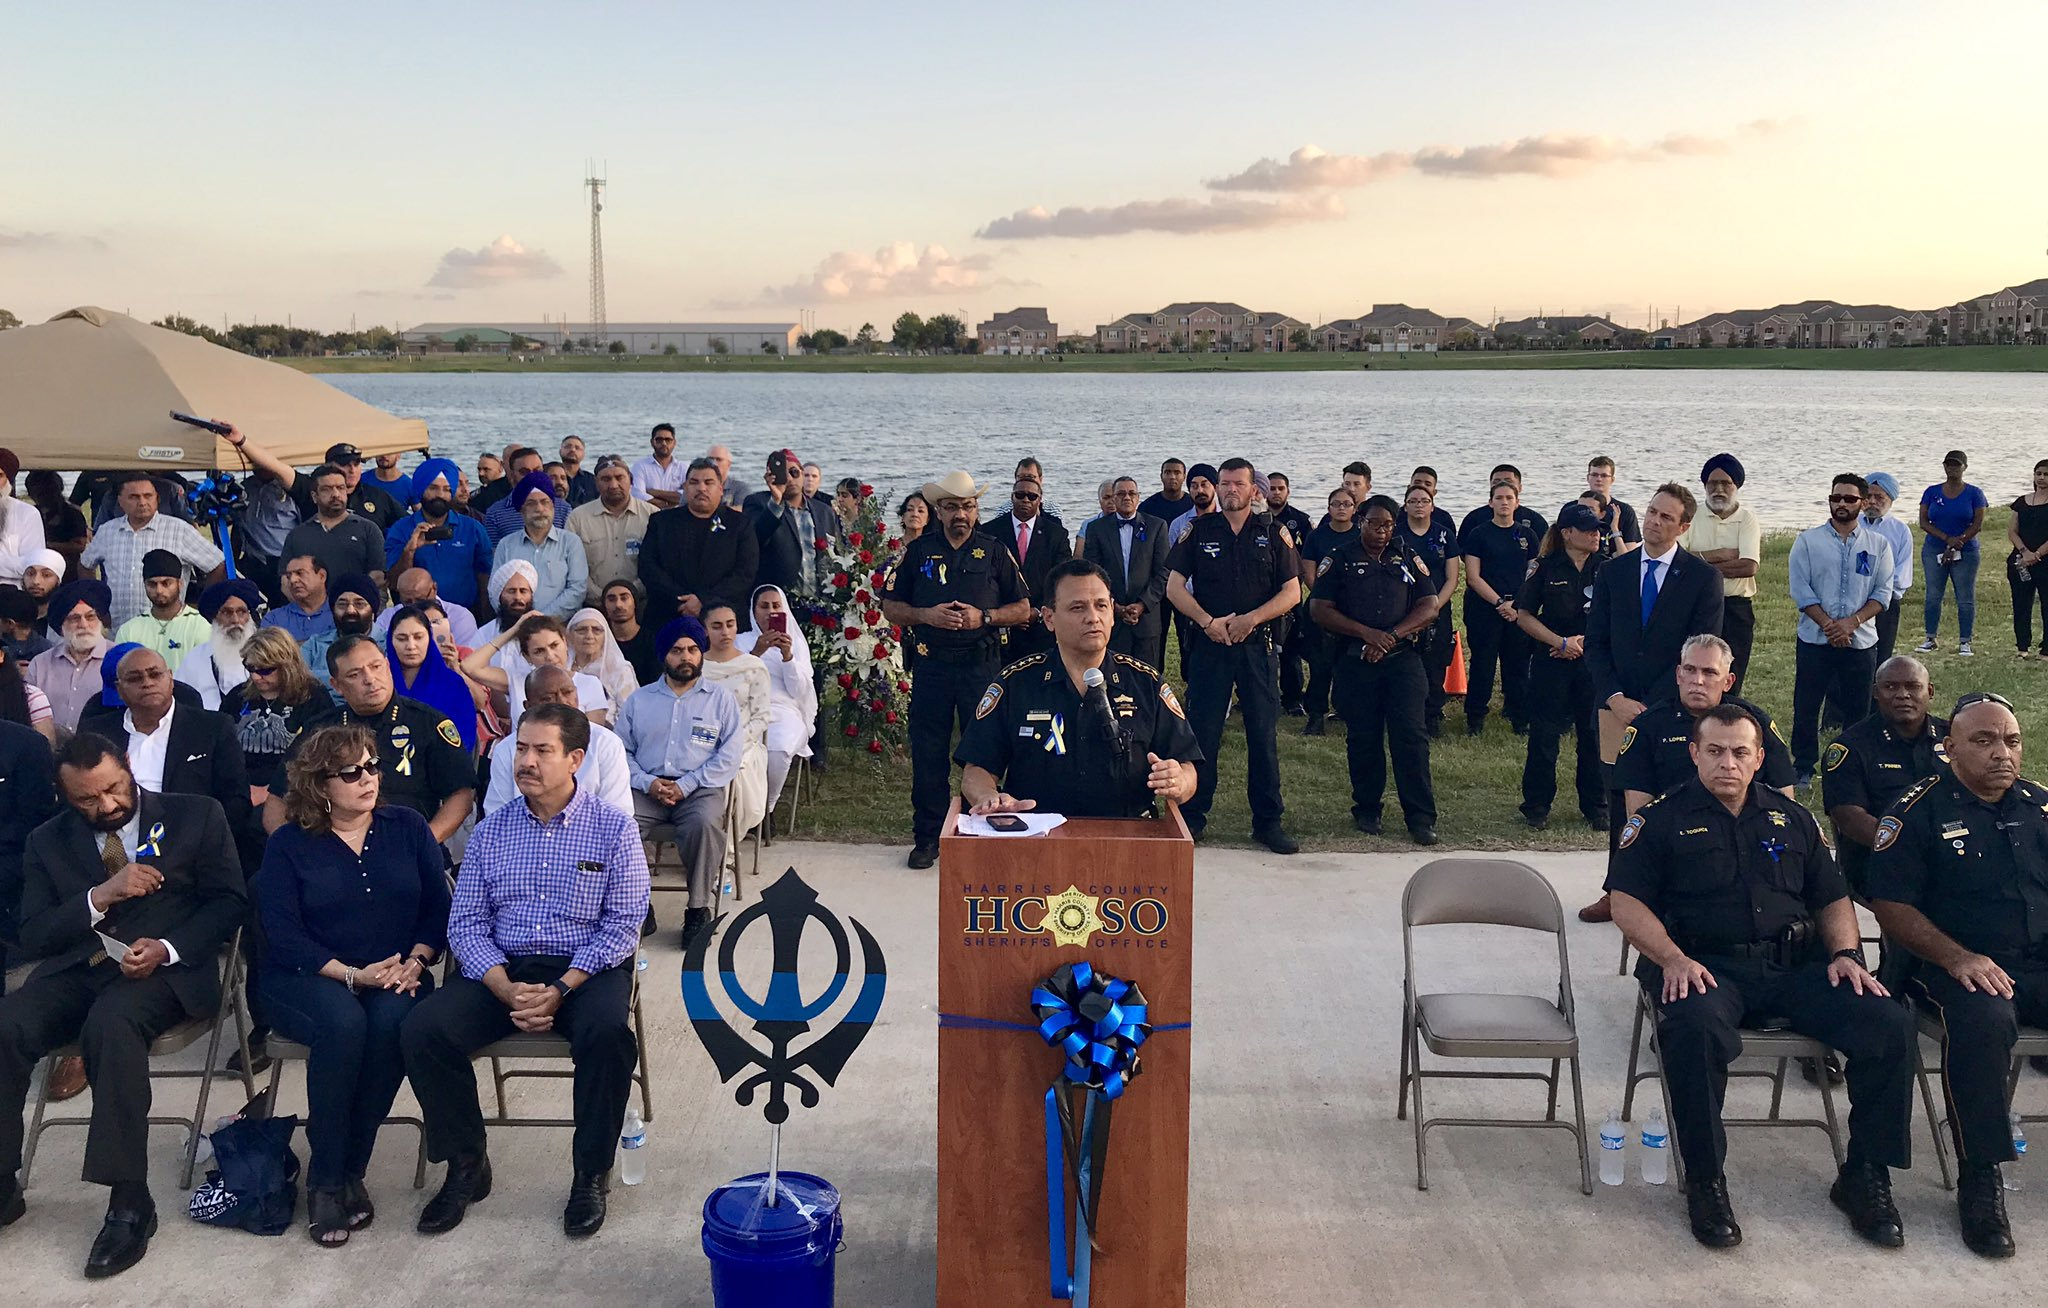 Memorial service for Lt. Sandeep Singh Dhaliwal at Harris County. Photo courtesy: Twitter/@HCSOTexas